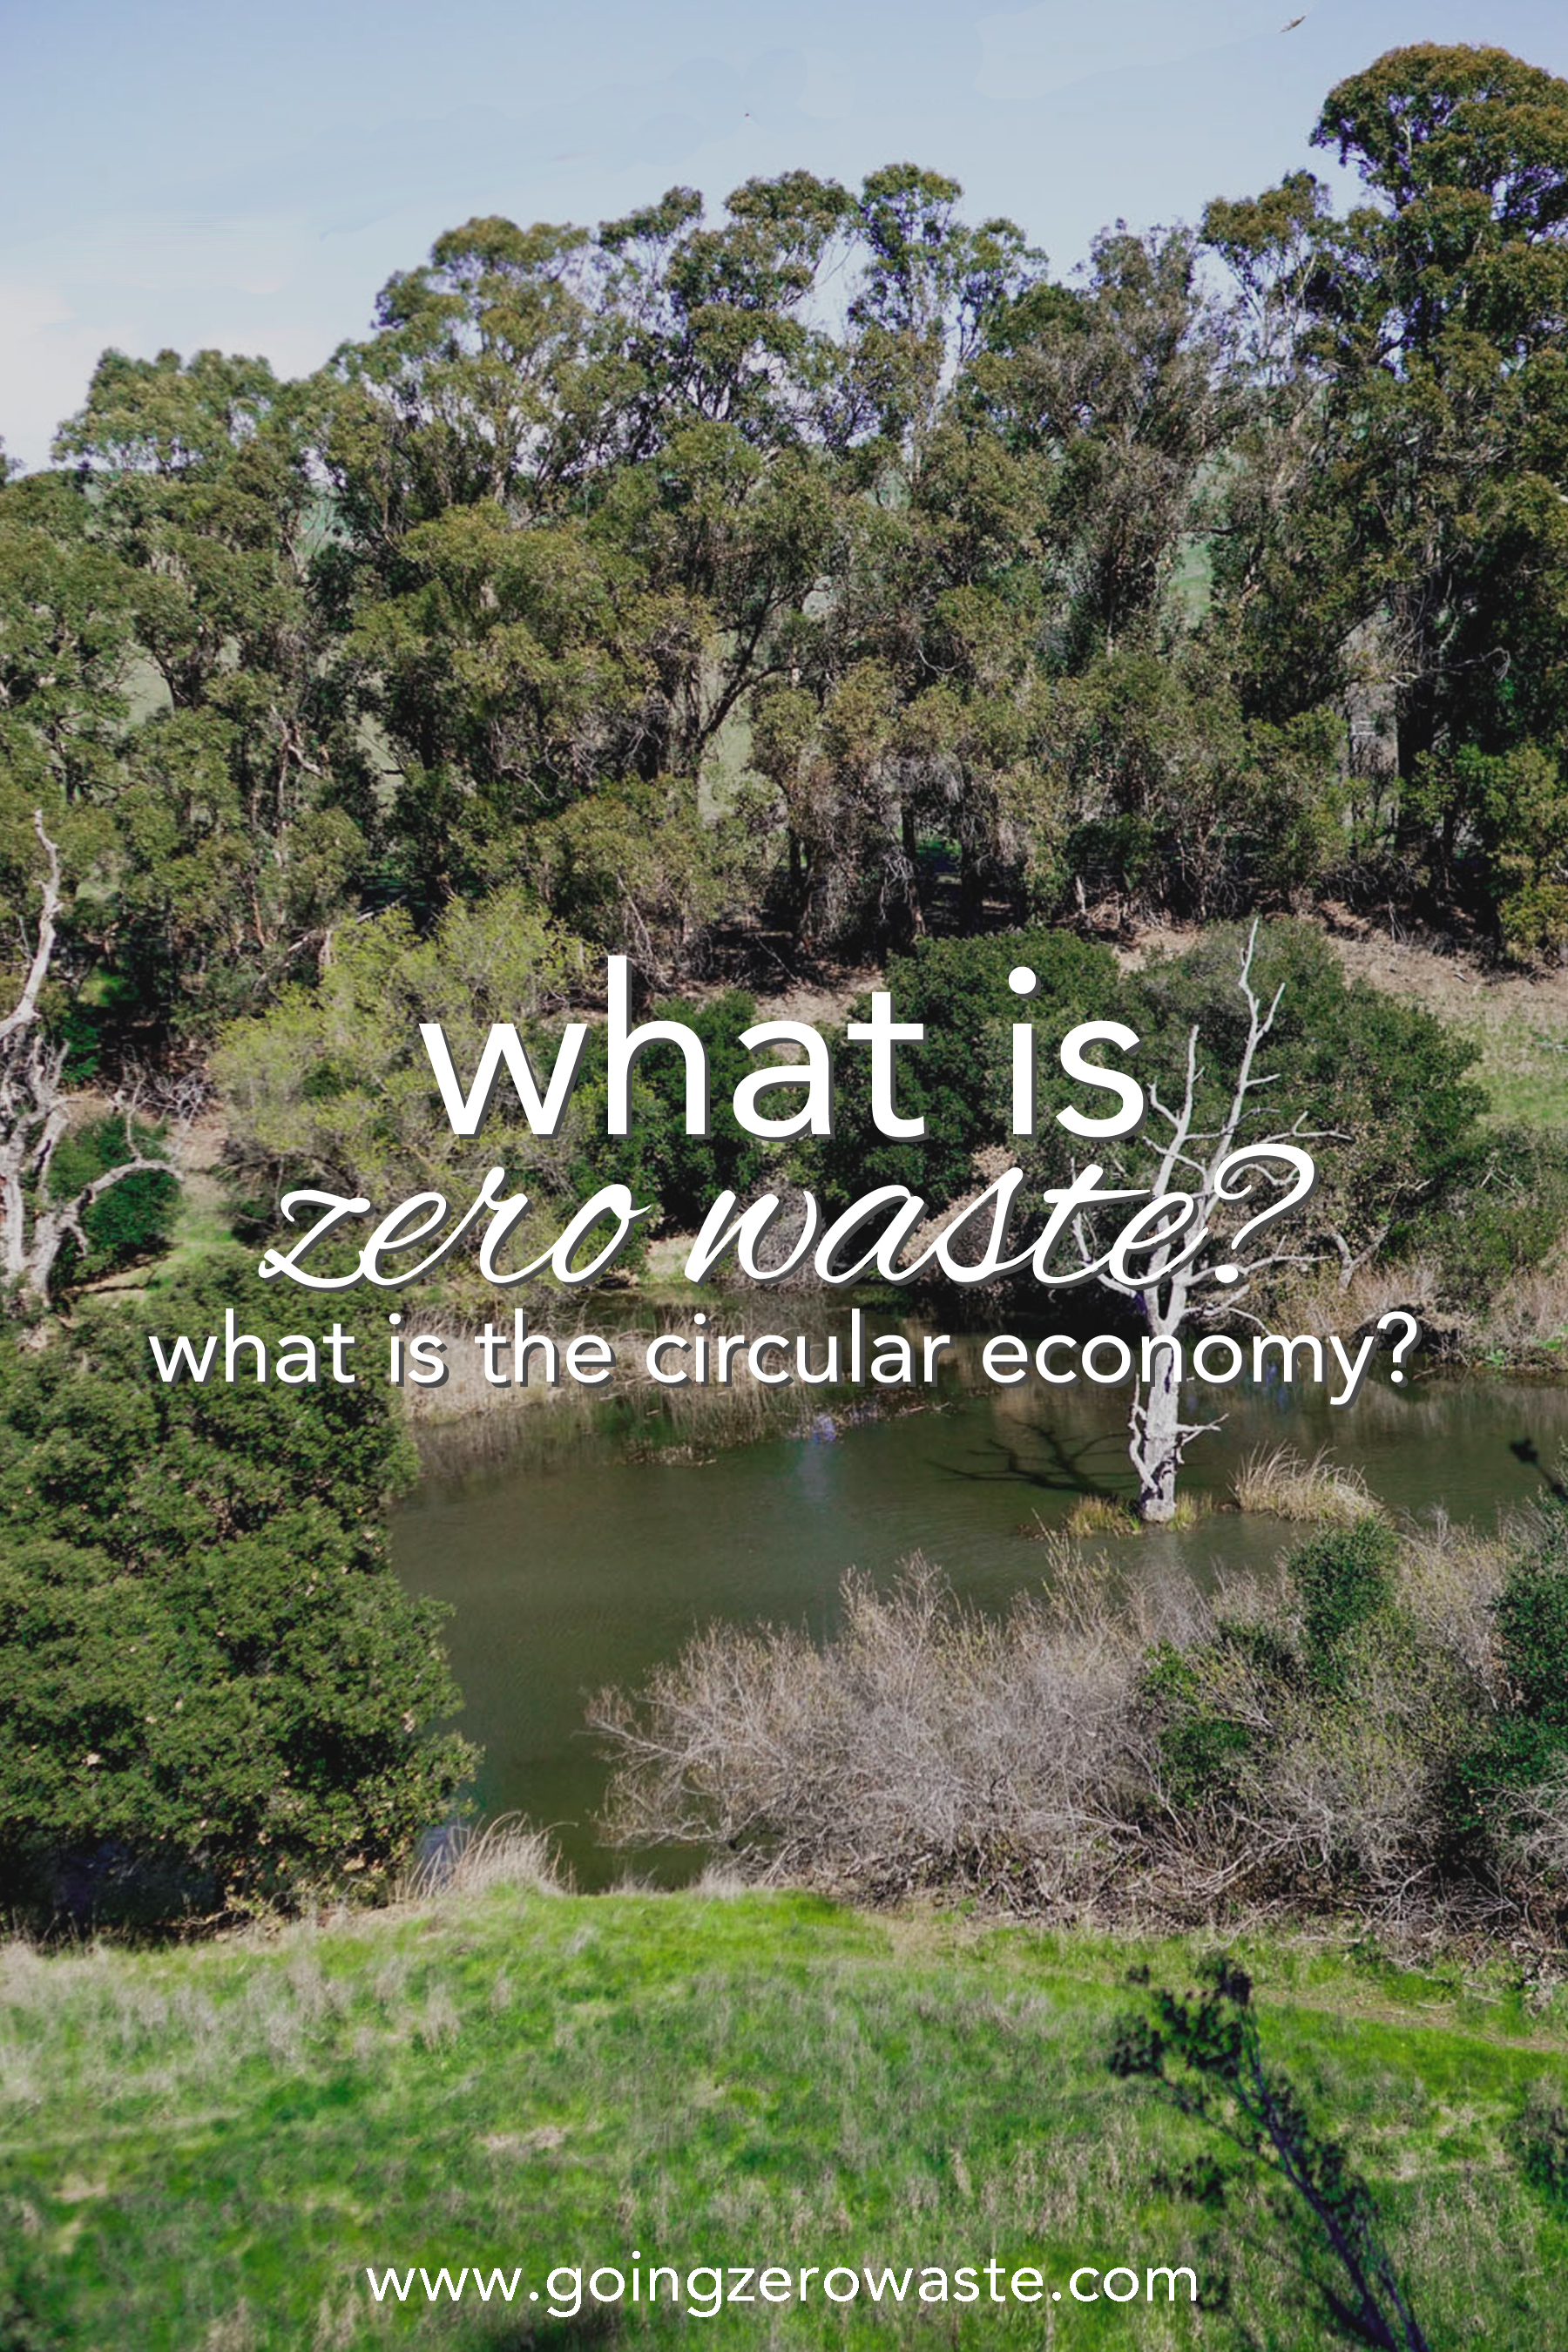 What is zero waste and what is the circular economy from www.goingzerowaste.com